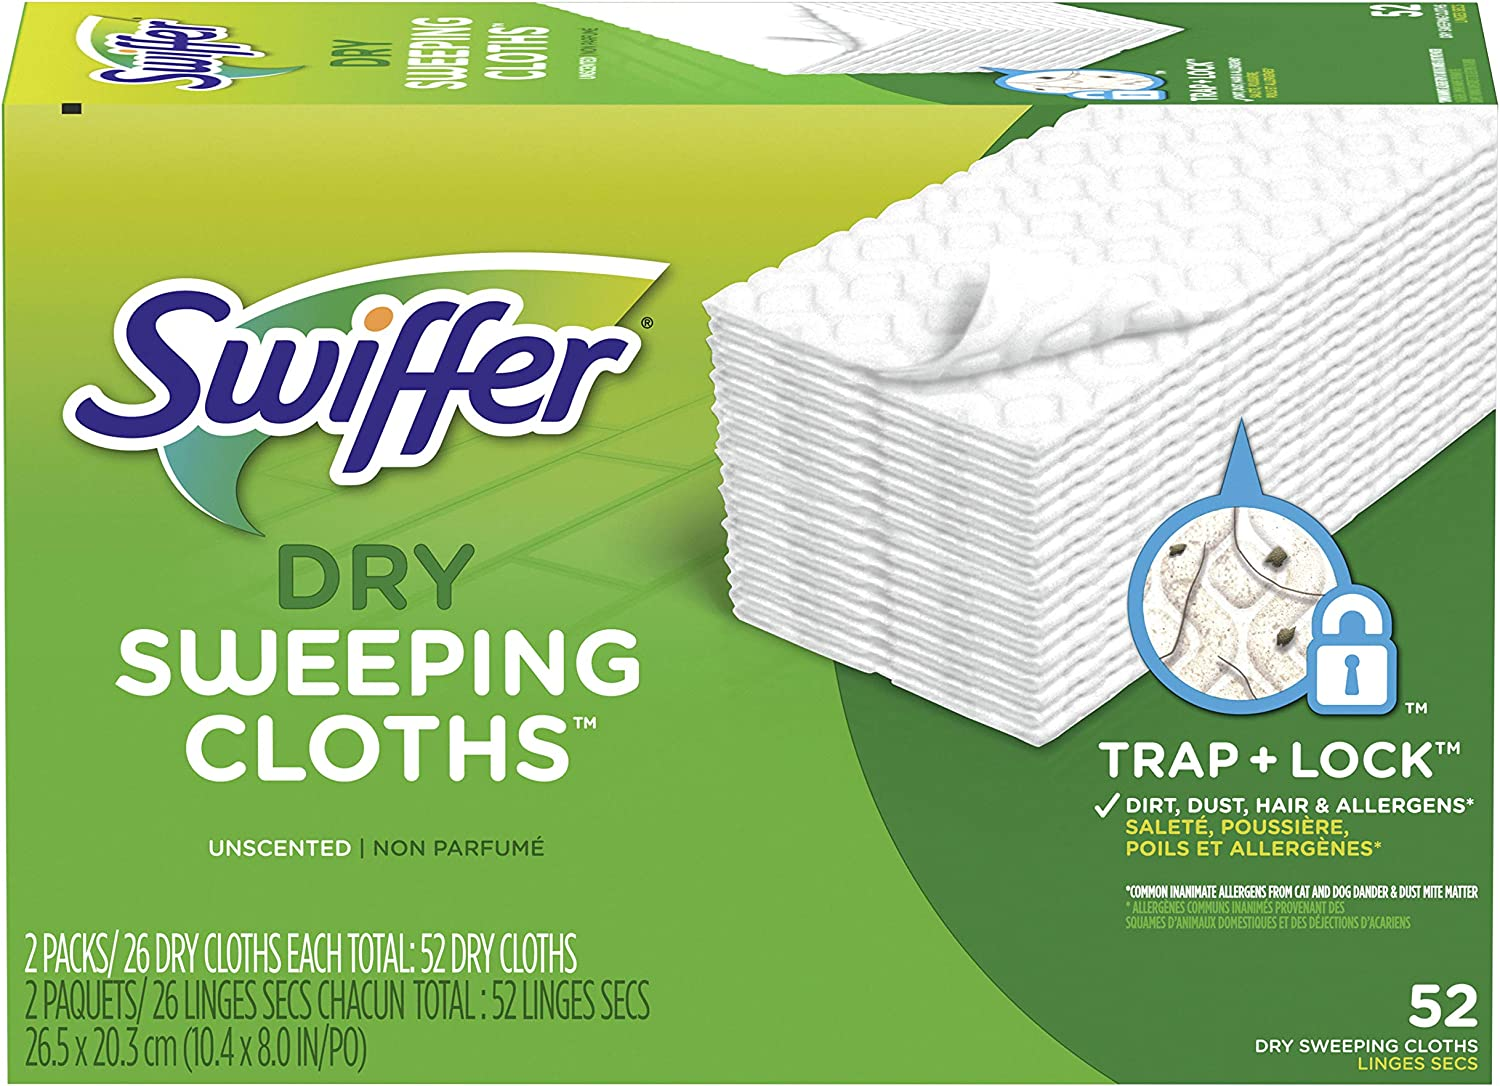 Swiffer Sweeper Dry Mop Refills for Floor Mopping and Cleaning, All Purpose Floor Cleaning Product, Unscented, 52 Count(packaging may vary): Health & Personal Care